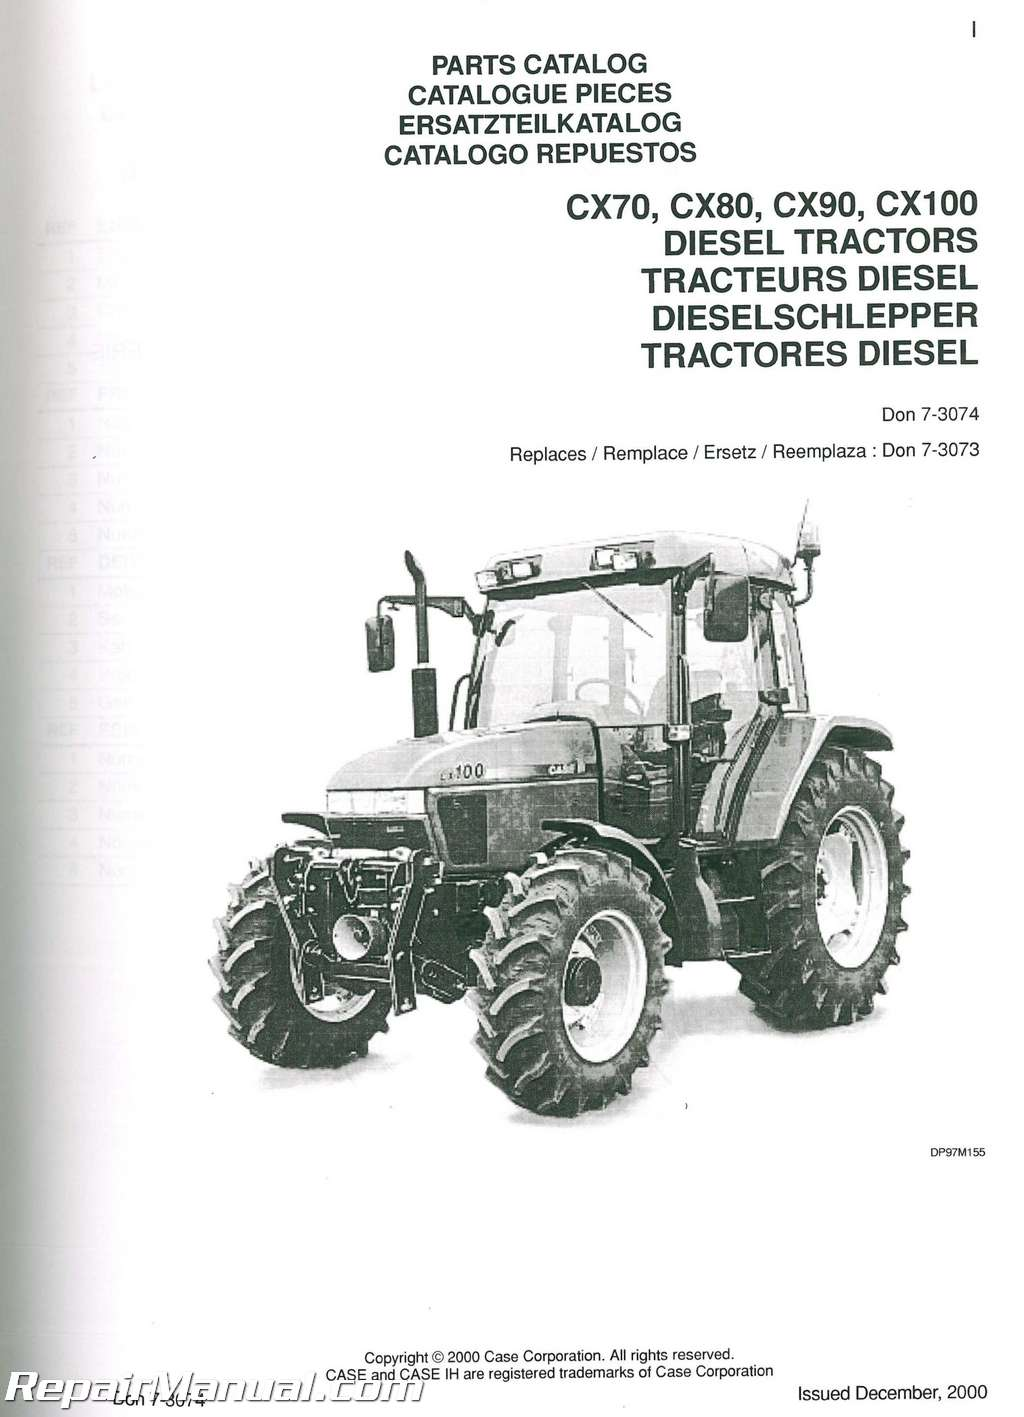 case cx100 diesel parts manual rh repairmanual com case ih parts manual download case ih parts manual download